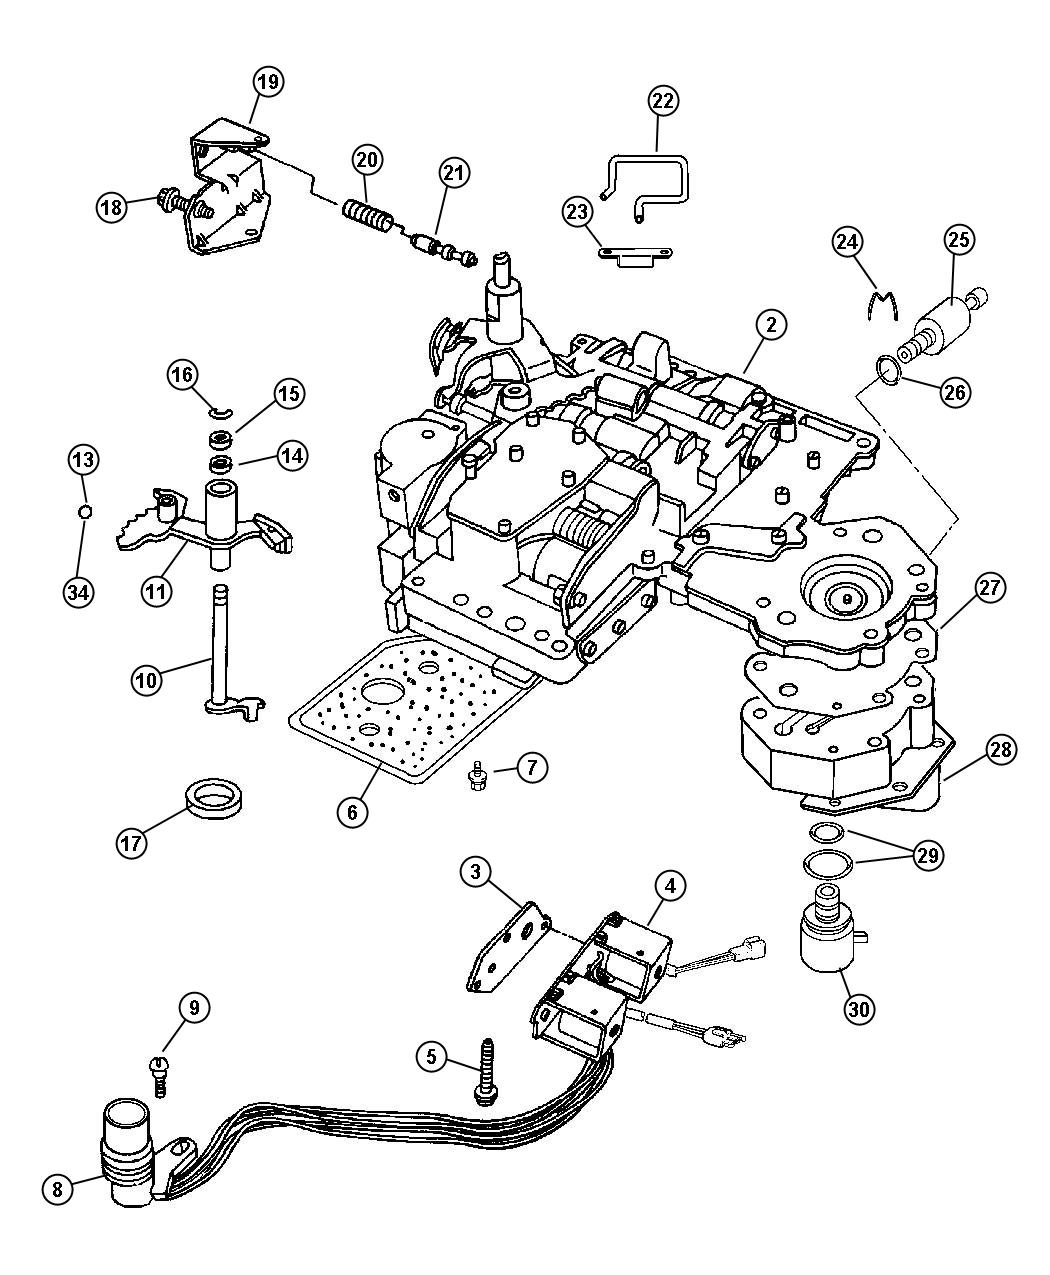 wiring diagram for dodge ram 1500 with Dodge Factory Trailer Plug Wiring Diagram 1999 on 786oy Durango 1998 Dodge Durango Wiring Diagram Obd Ll likewise Dodge Starter Relay Wiring Diagram moreover T3879707 Serpentine belt diagram jeep liberty also 4f2ae Dodge Ramcharger 1985 Dodge Ramcharger Tilt likewise Discussion D630 ds546768.